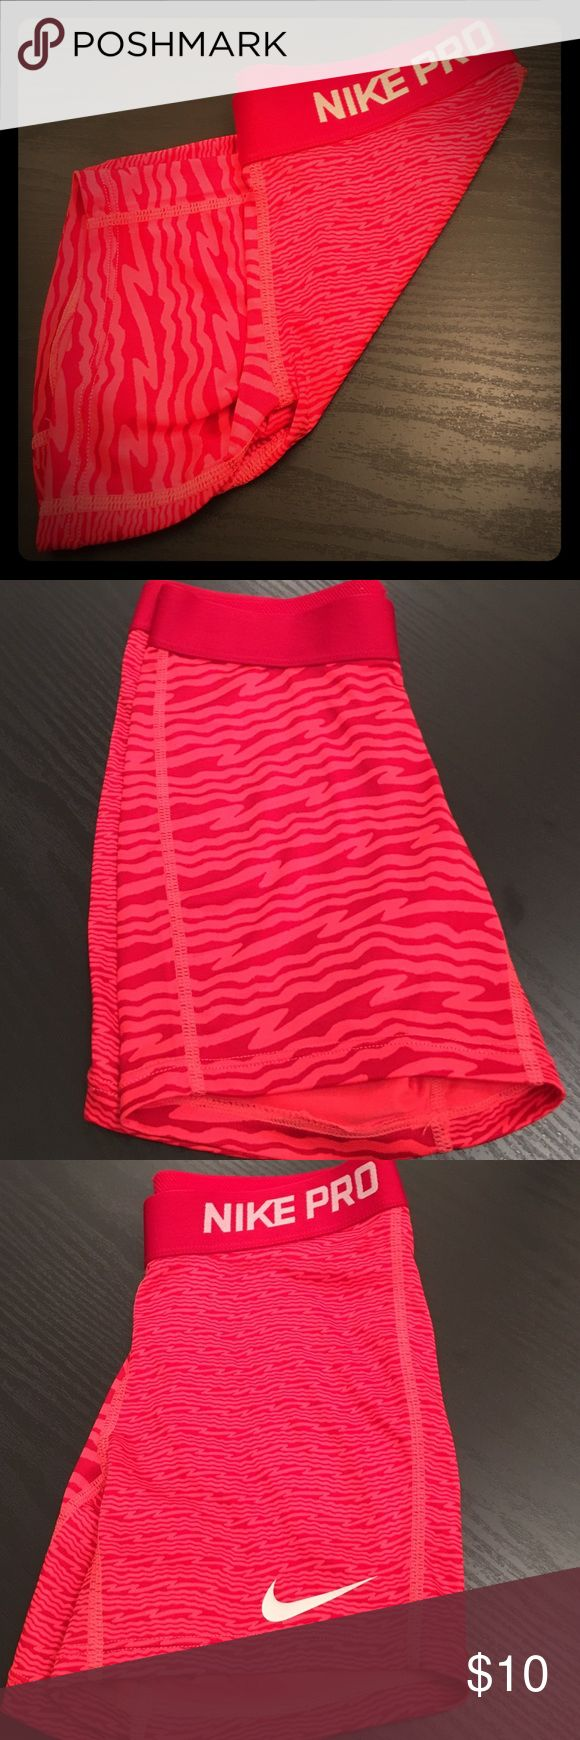 """Girls Nike Pro Shorts • Medium • Like New! Red and Coral Dri-Fit Compression Shorts • GIRLS MEDIUM • 4"""" Inseam • 10"""" Total Length • Silver Logo Accents • NEVER WORN! Nike Shorts"""